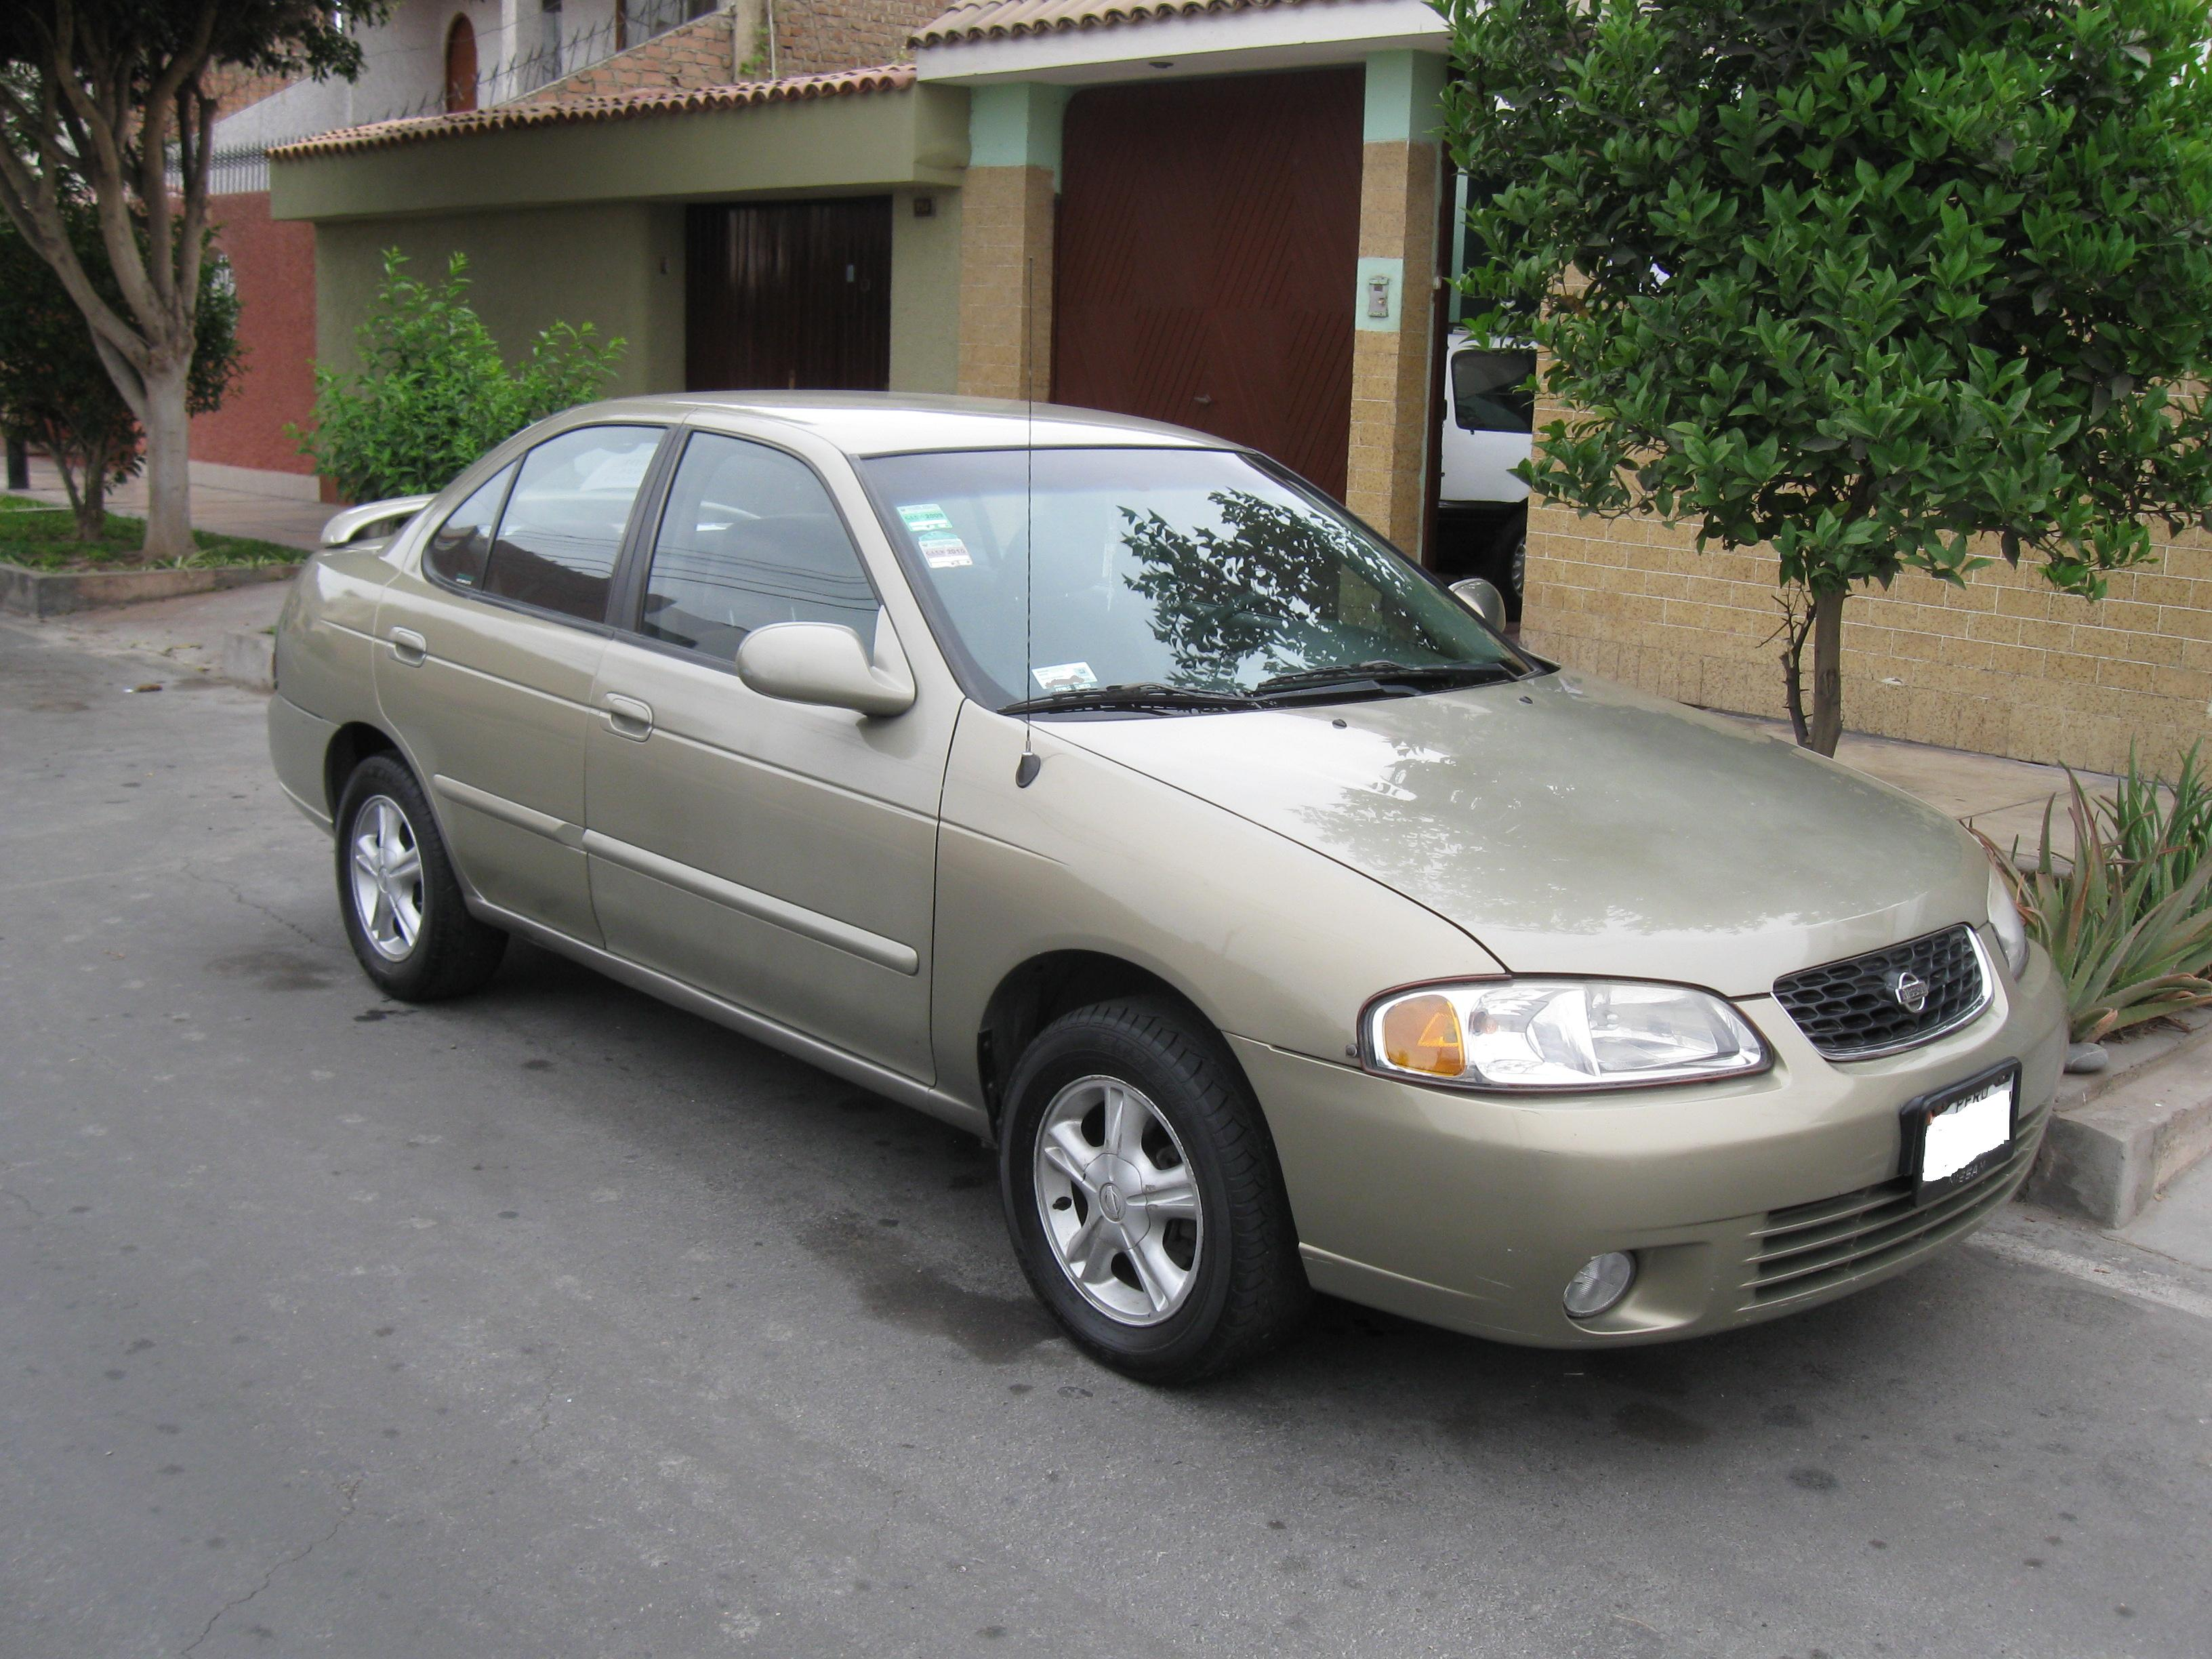 2002 Nissan Sentra Photos Informations Articles Engine Diagram 15